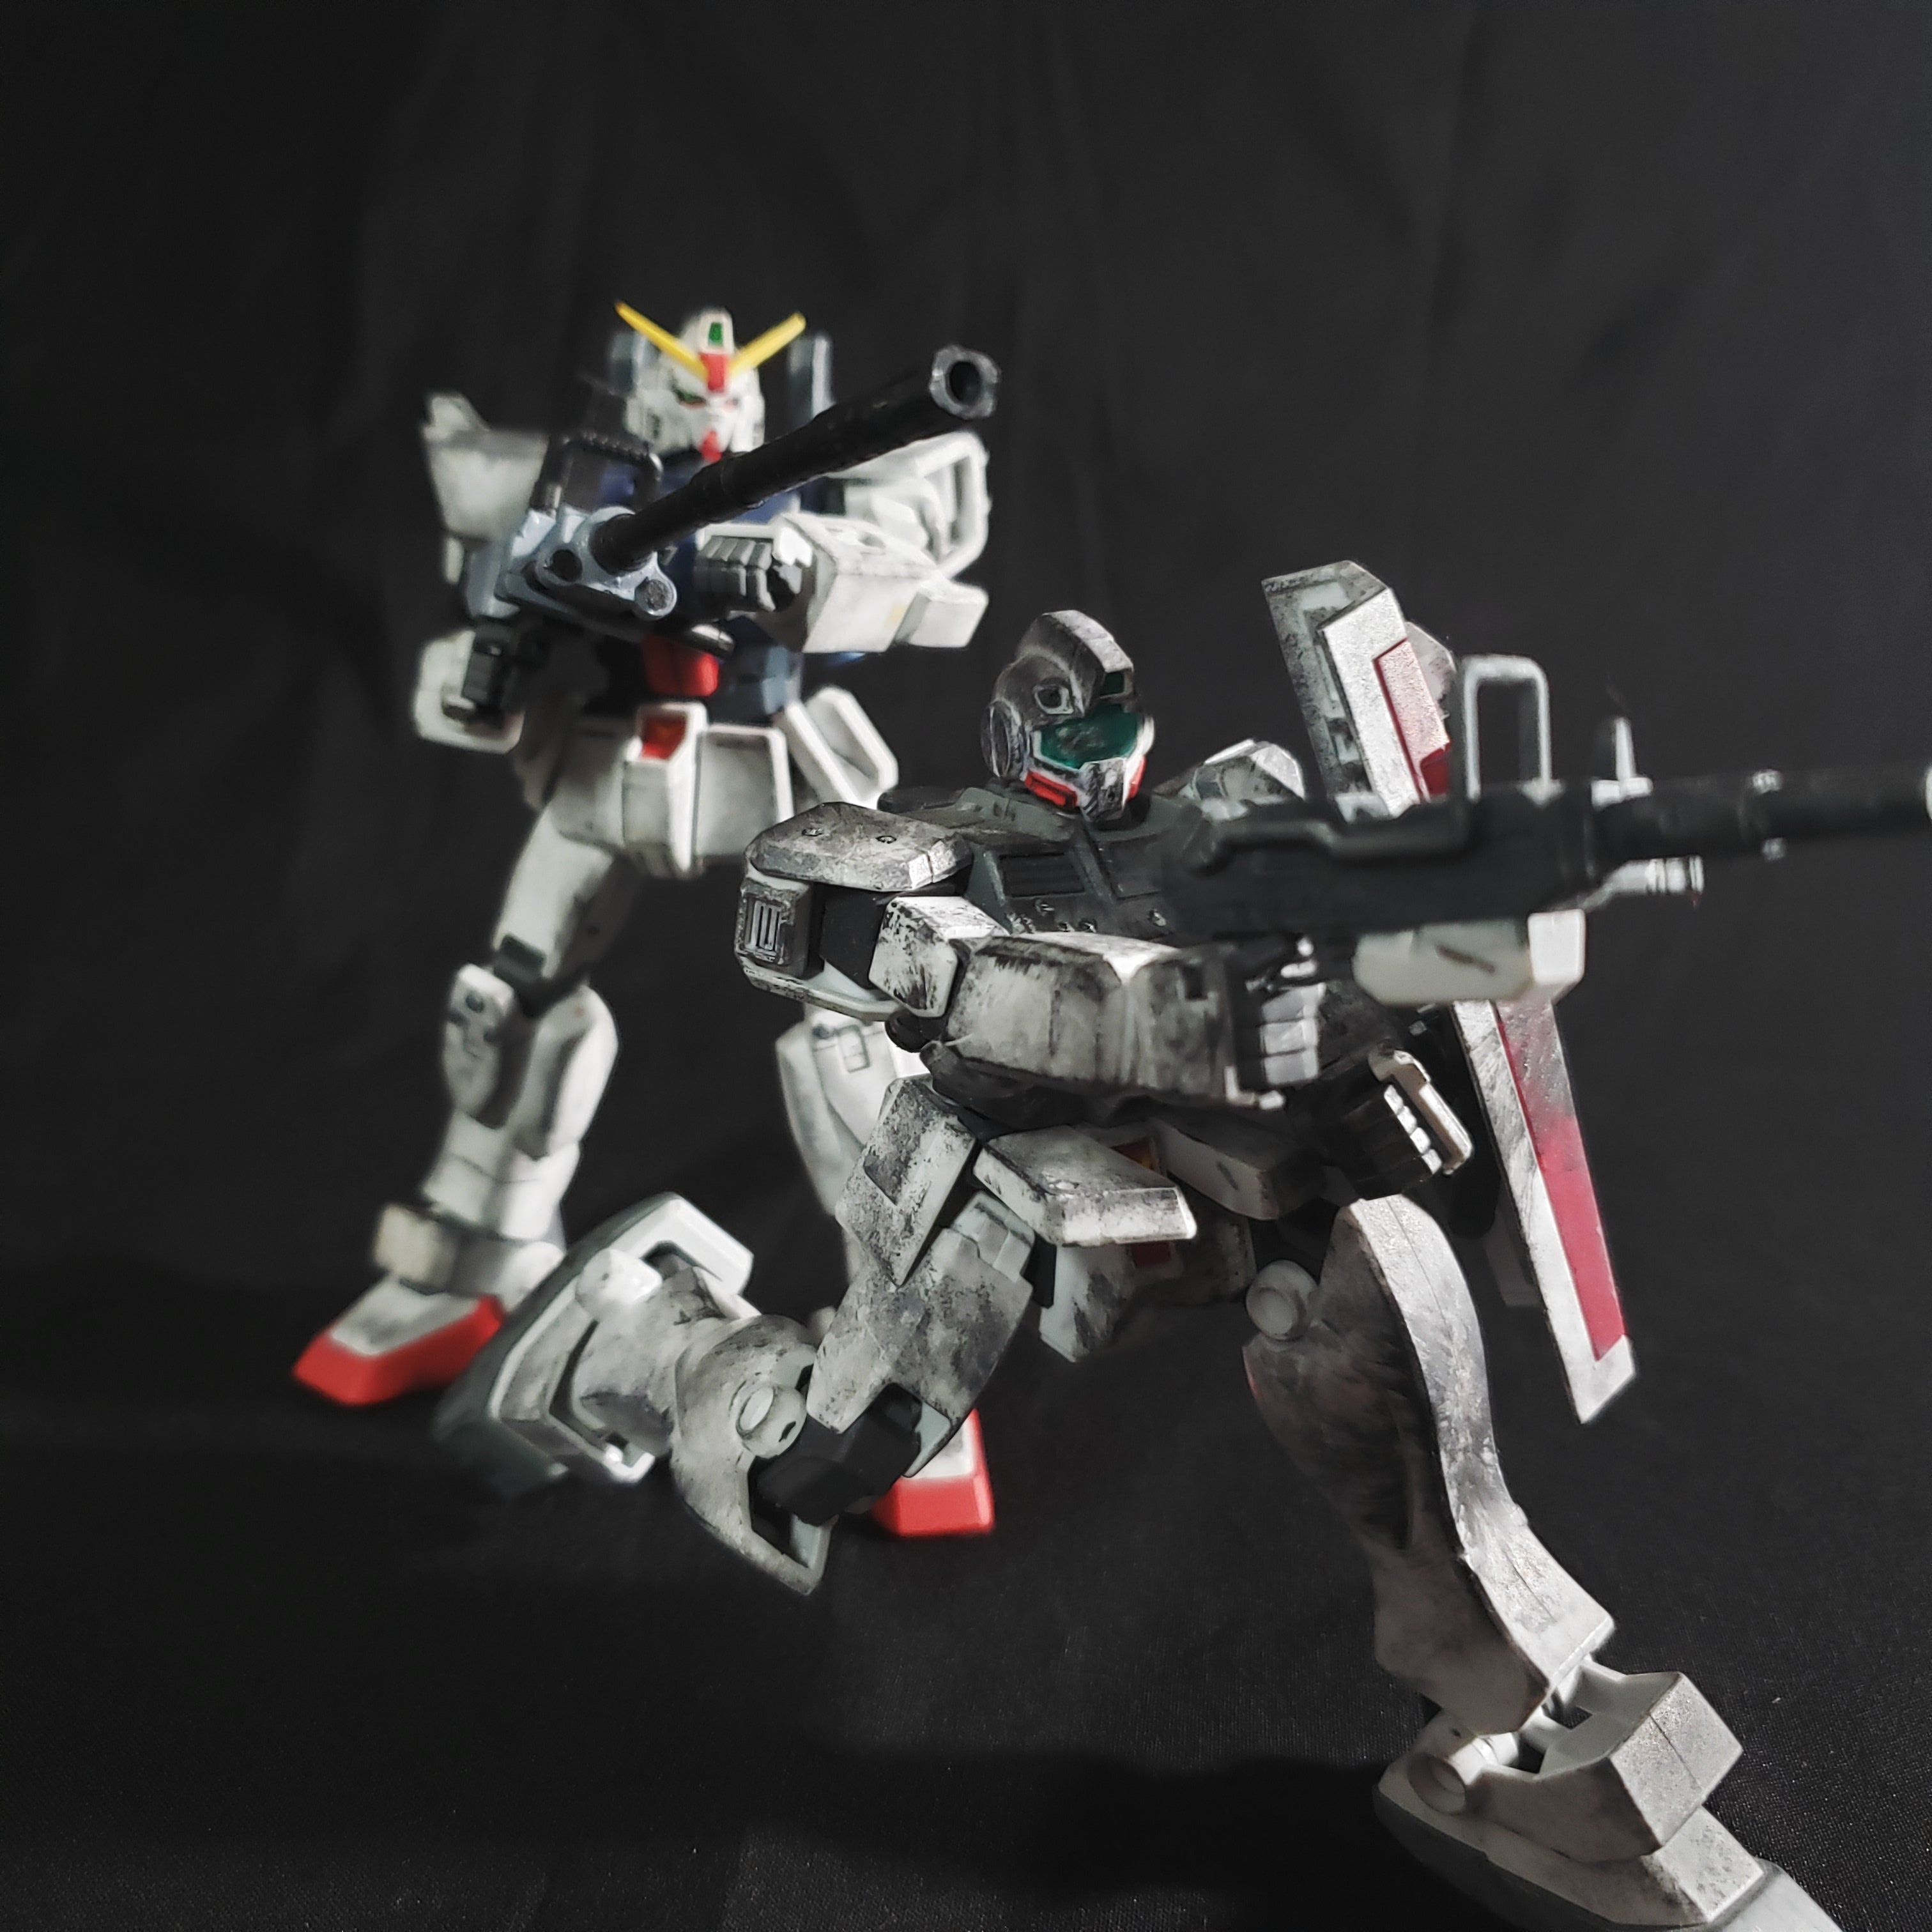 RGM 79D GM Cold Districts Type and RX 79 [G]